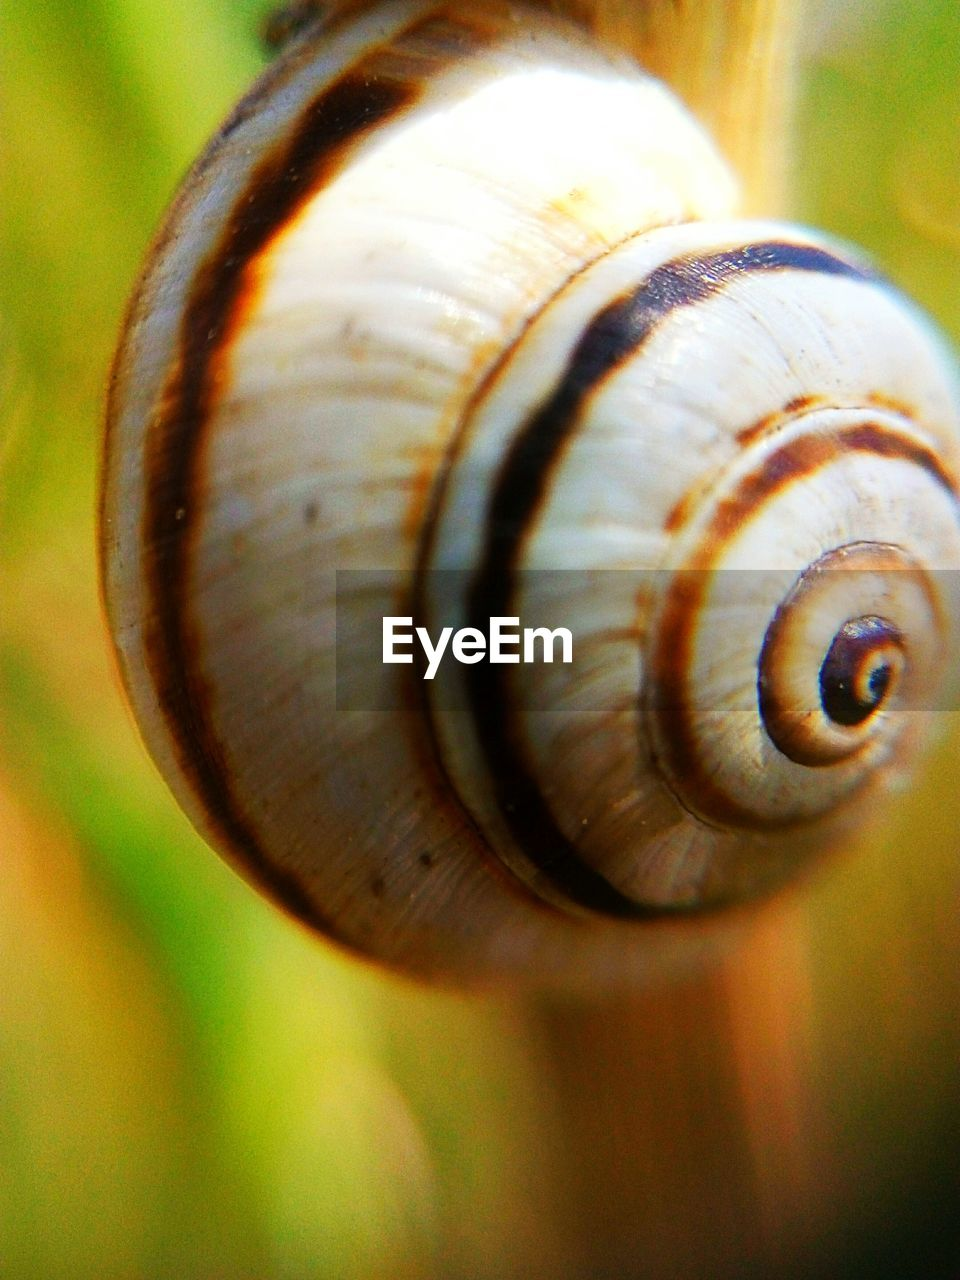 shell, snail, mollusk, close-up, animal shell, gastropod, animal wildlife, animal, invertebrate, focus on foreground, animal themes, animals in the wild, one animal, day, selective focus, no people, spiral, animal body part, boredom, pattern